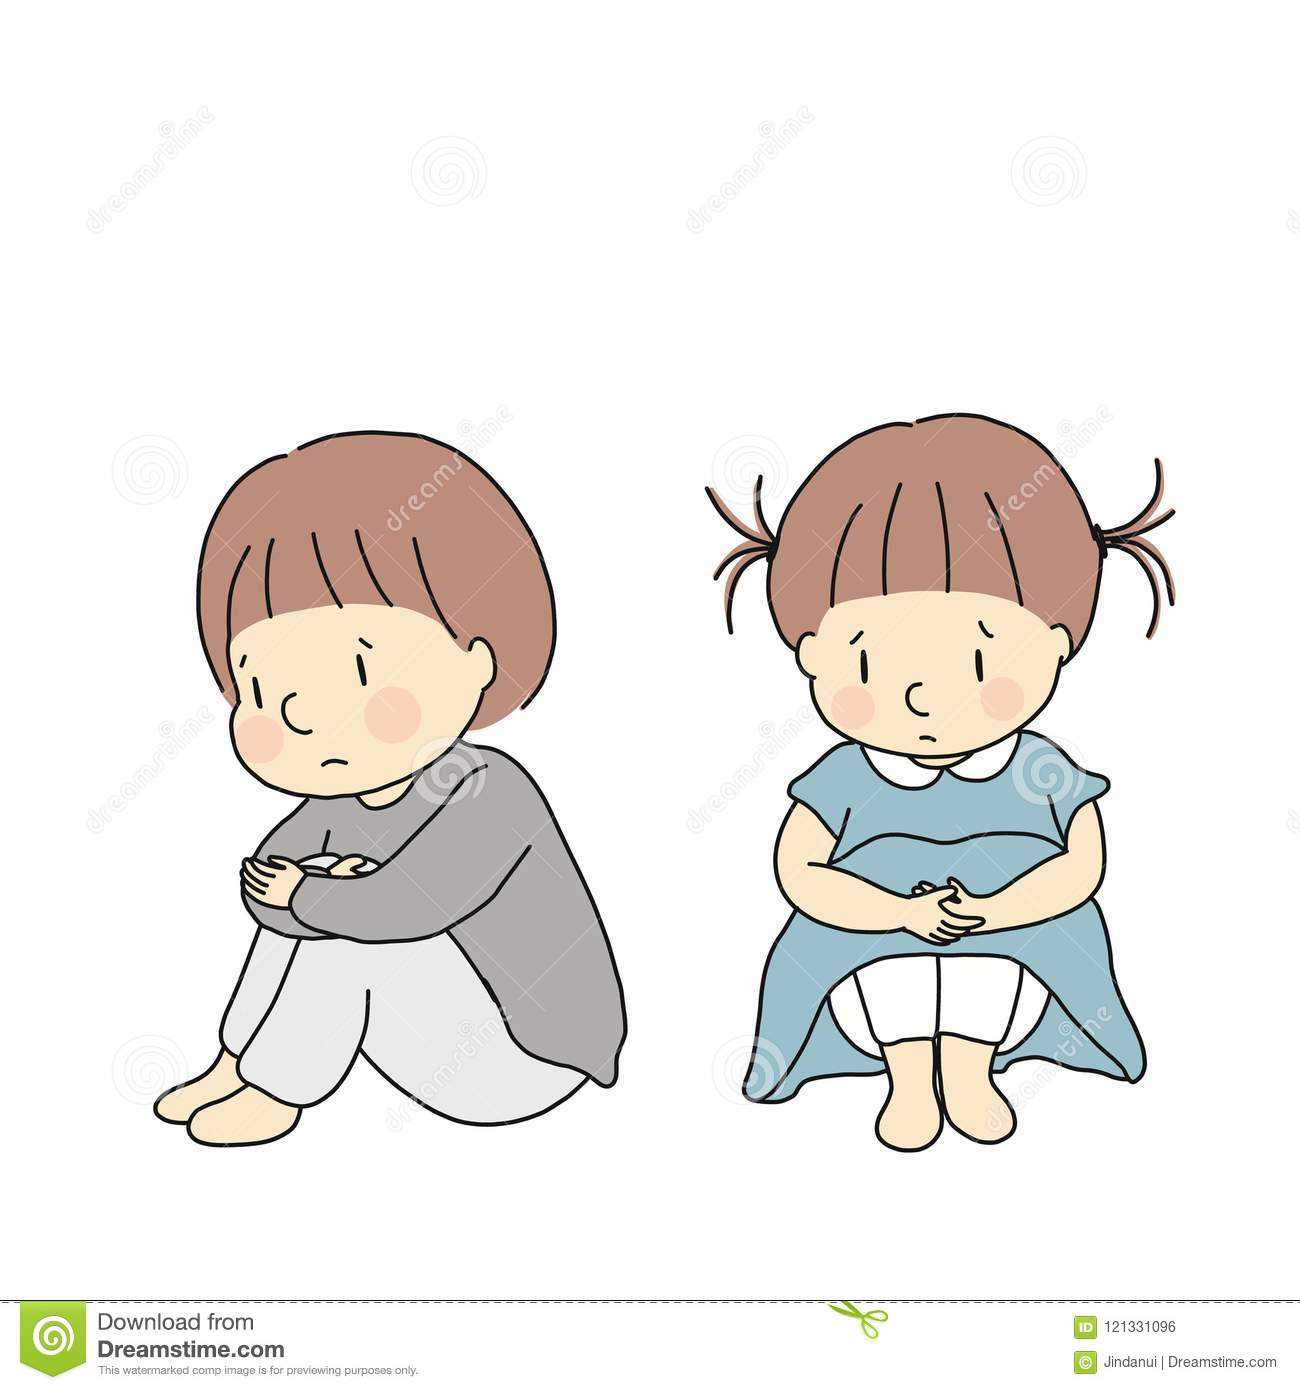 Vector illustration of little kids hugging knees, feeling sad and anxious. Child emotion problem concept Cartoon character drawing